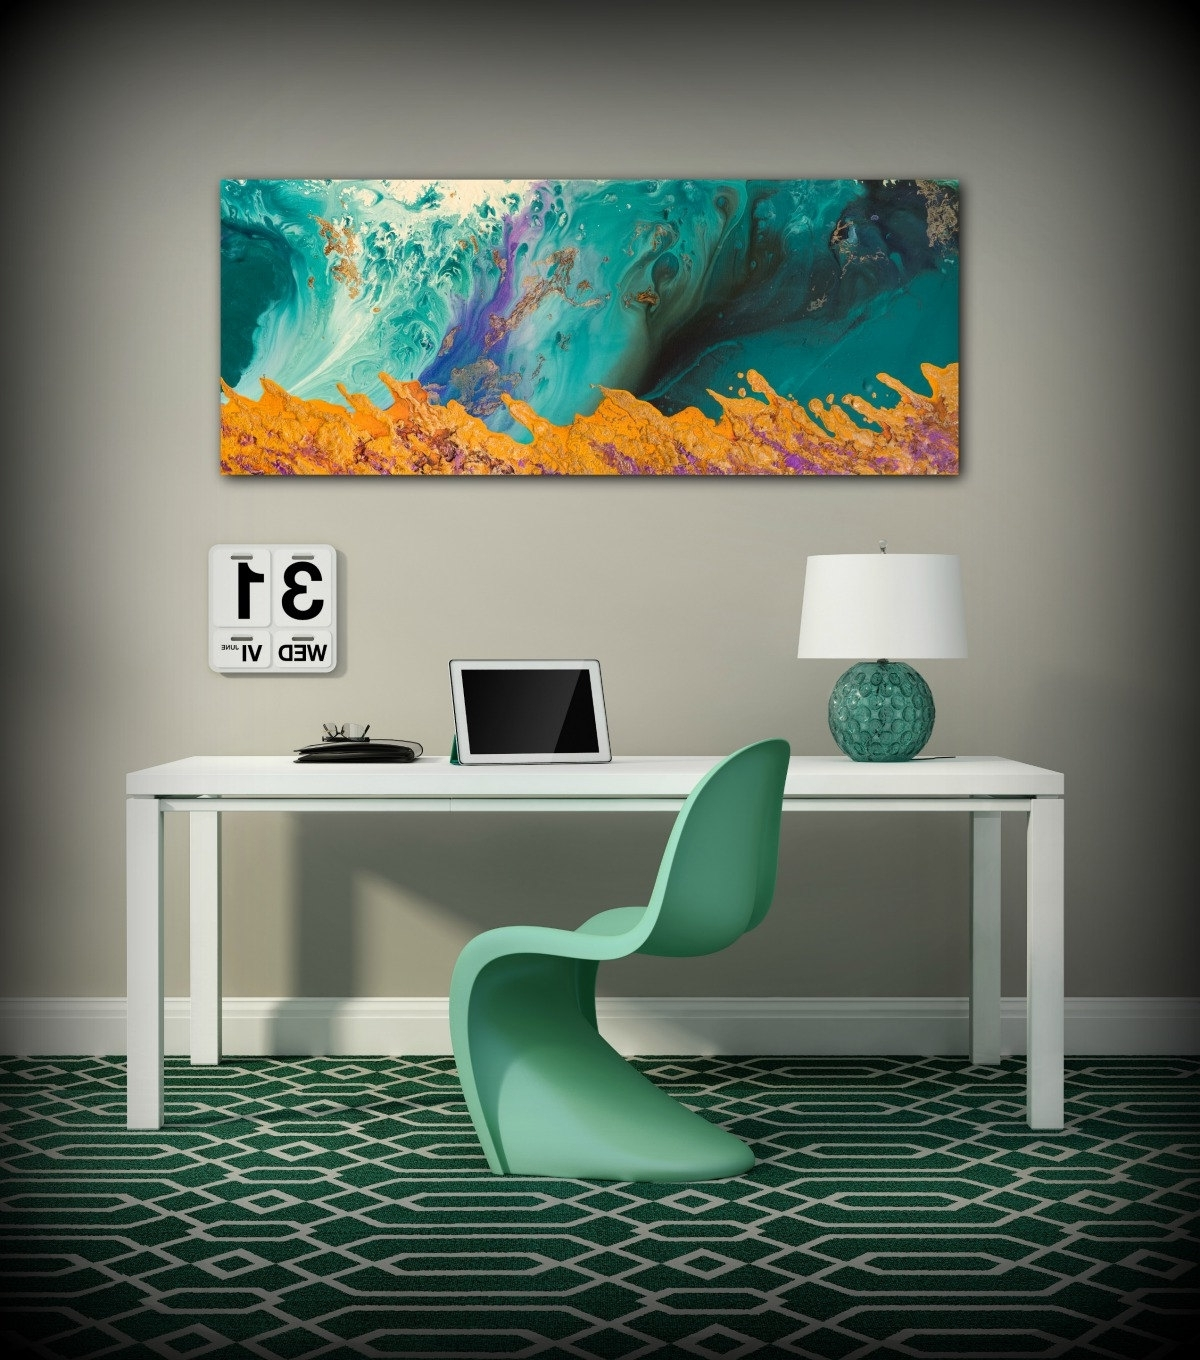 Canvas Print Wall Decor Large Abstract Wall Art Teal And Orange Intended For 2017 Oversized Abstract Wall Art (View 4 of 15)